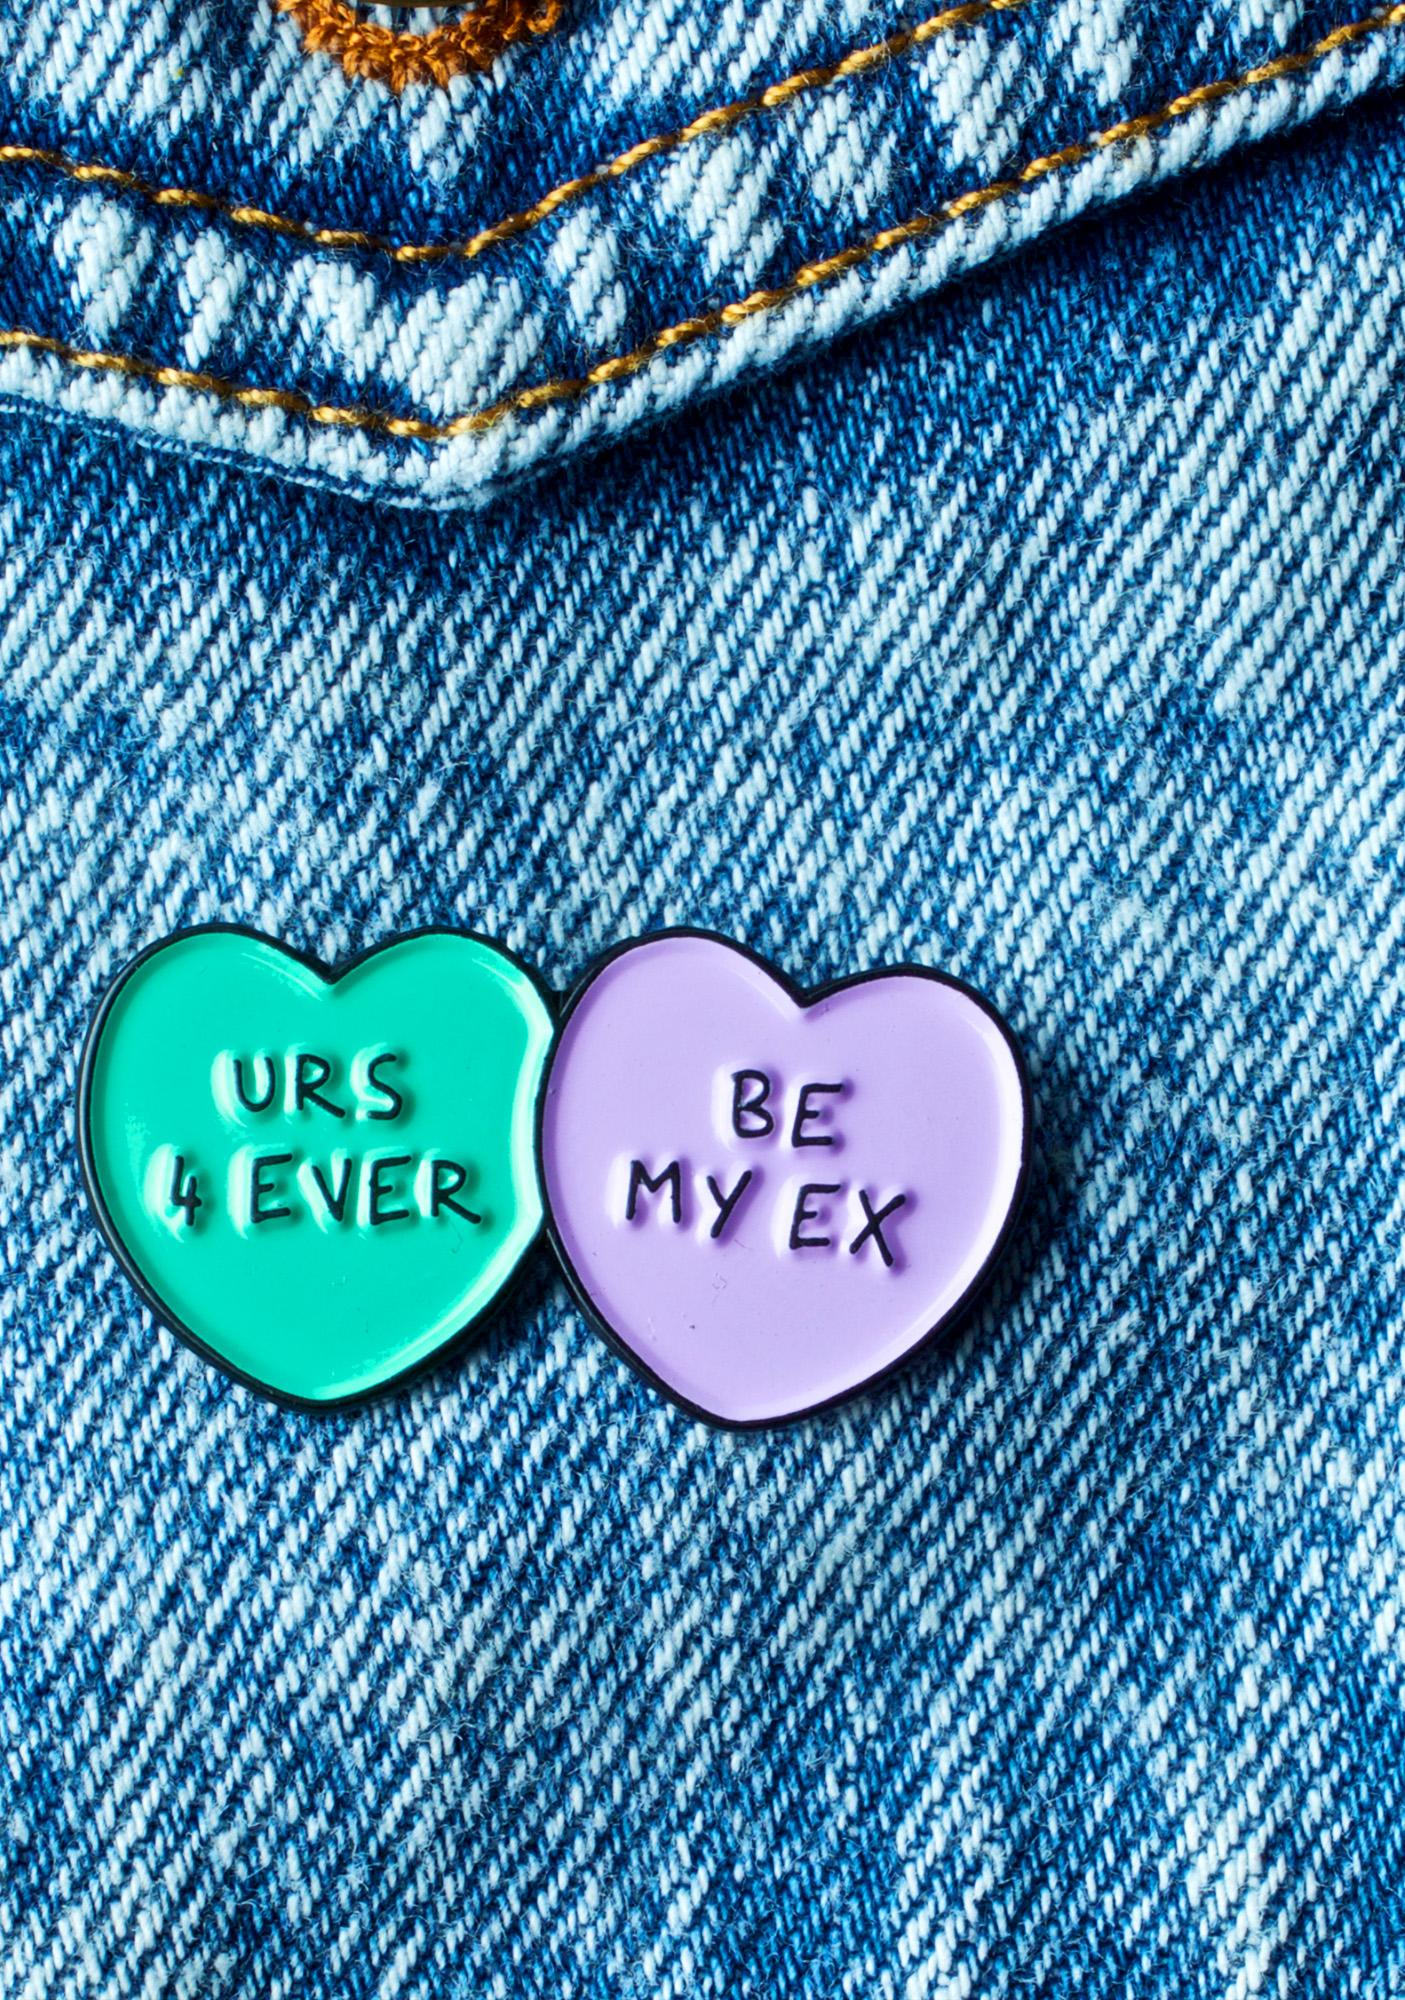 This Is A Love Song Urs 4Ever Pin